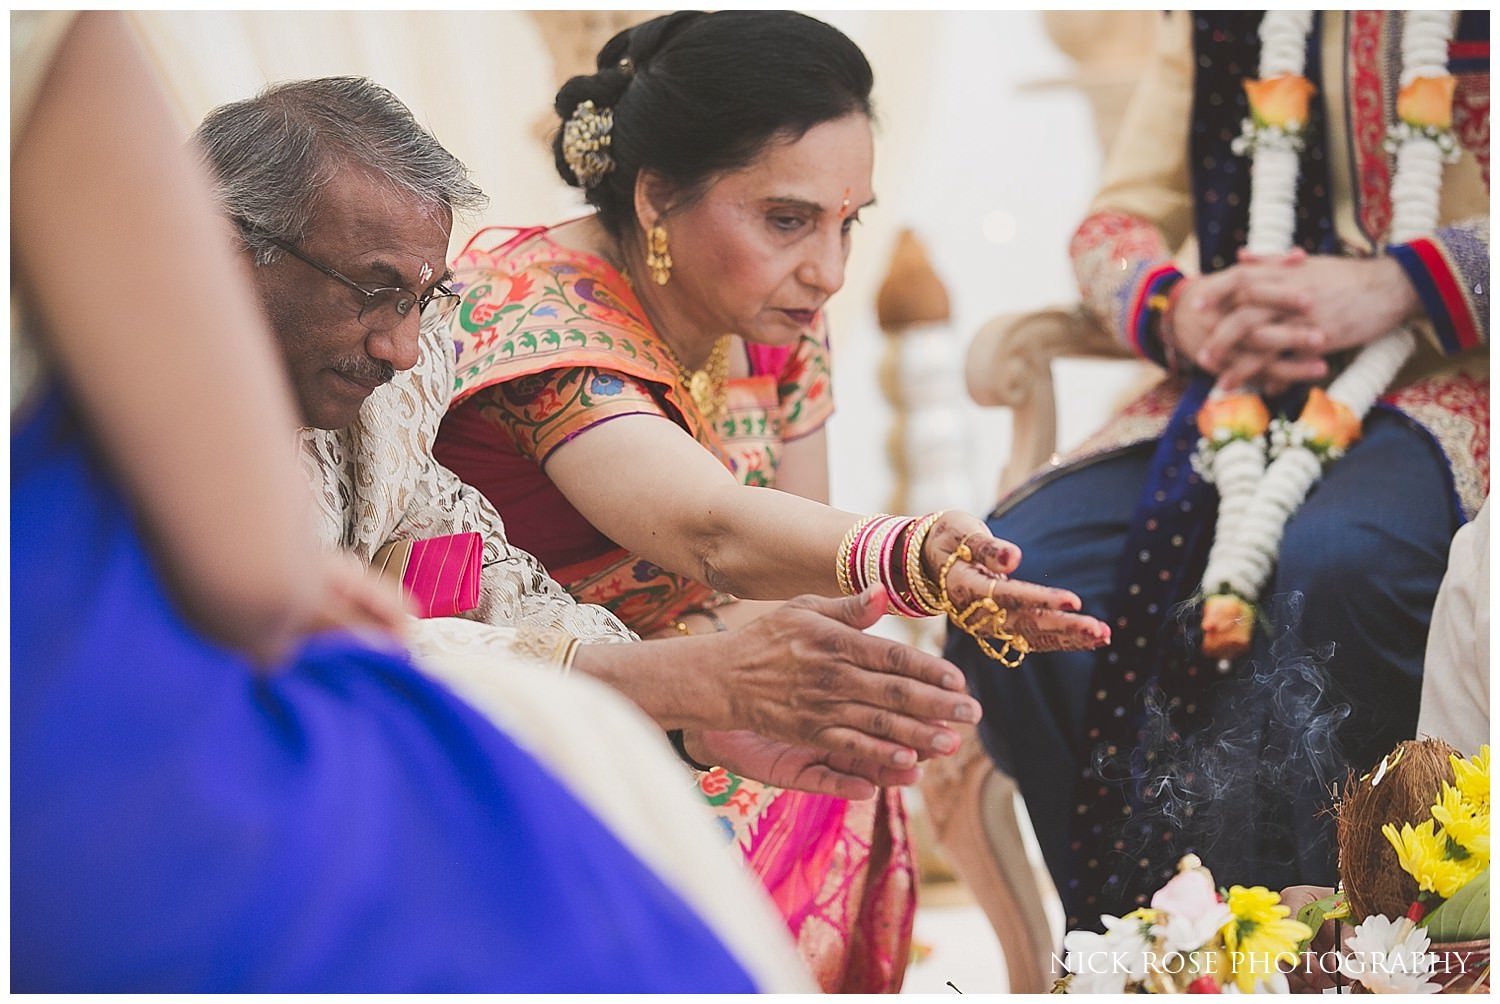 Brides mother during an East Wintergarden Hindu wedding in Canary Wharf London